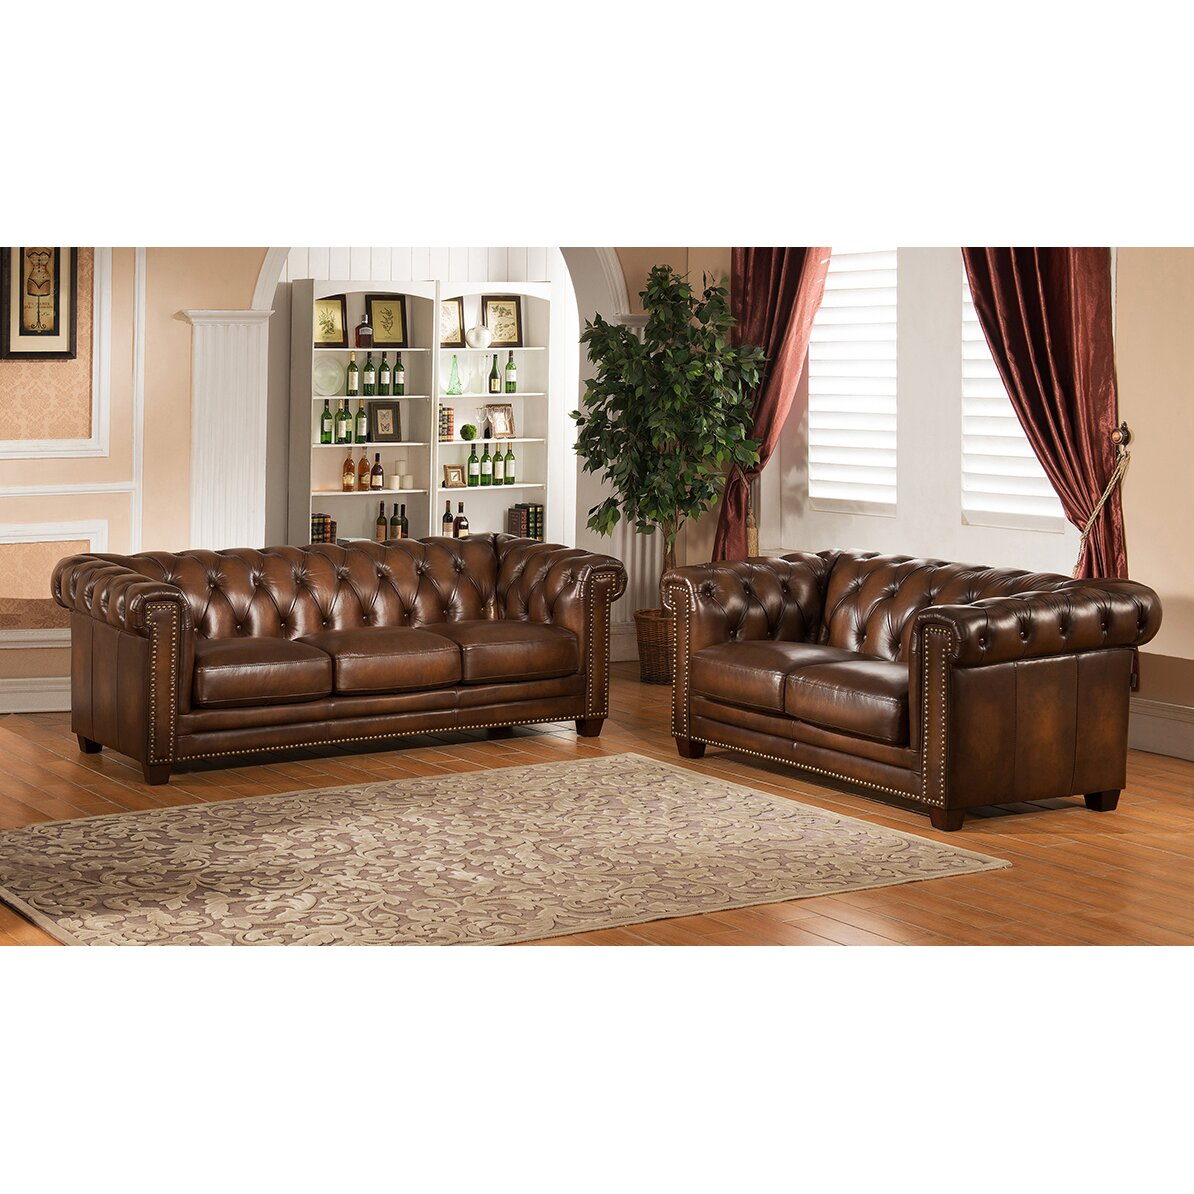 Amax Hickory Chesterfield Genuine Leather Sofa And